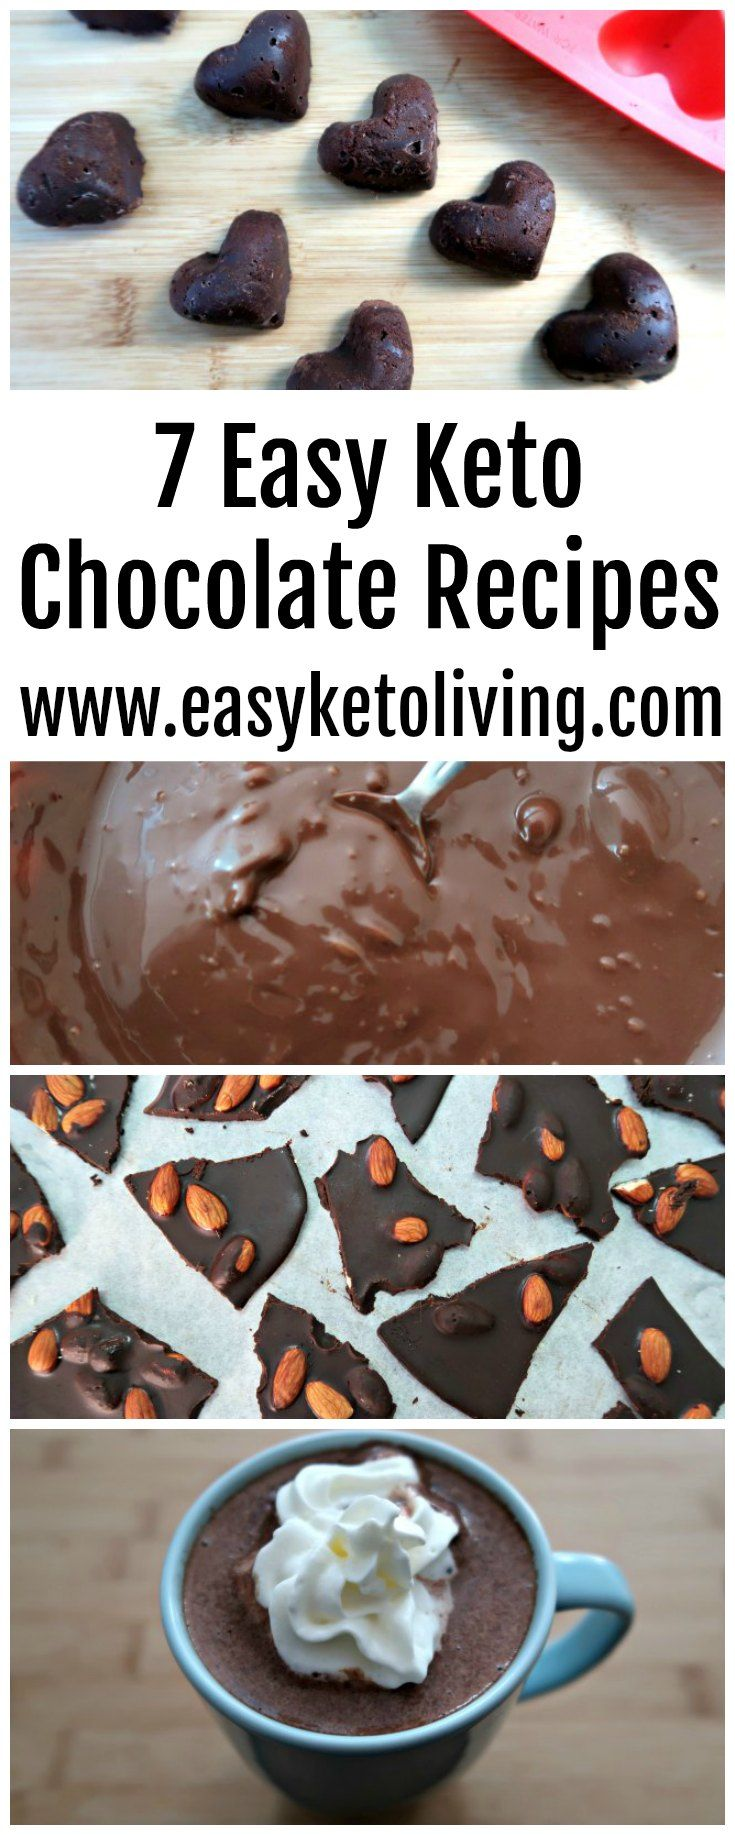 7 Keto Chocolate Recipes - Easy Low Carb Decadent Chocolate Desserts - LCHF sweet treats and puddings including truffles, fat bombs, hot chocolate and more!